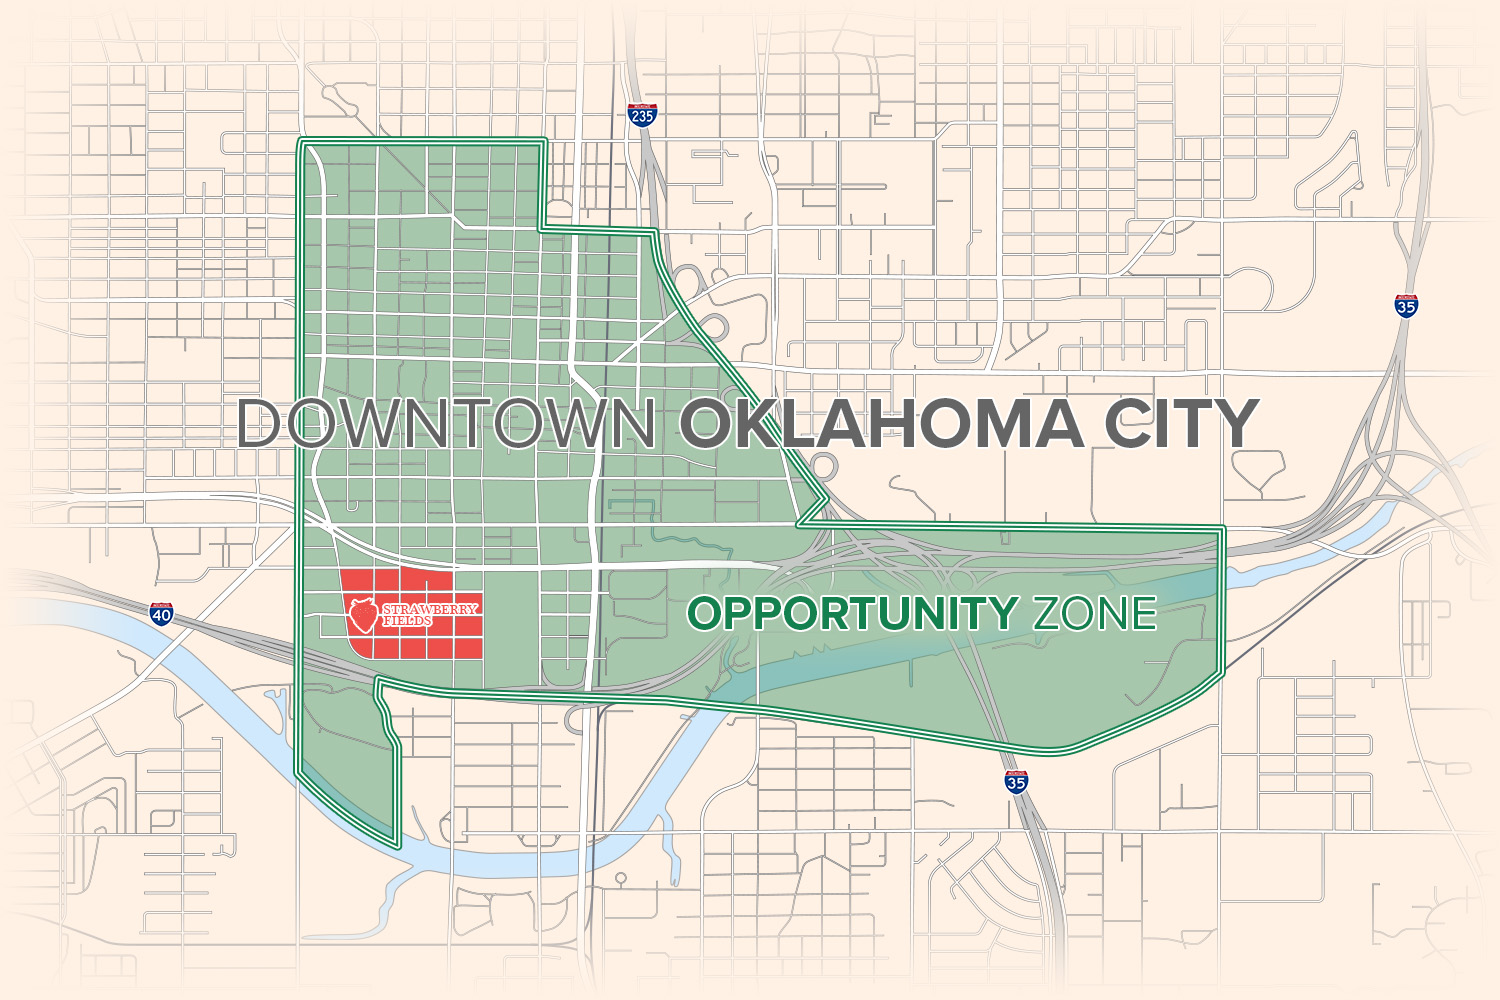 StrawberryFields_OKC_Opportunity_Zone_GREEN.jpg